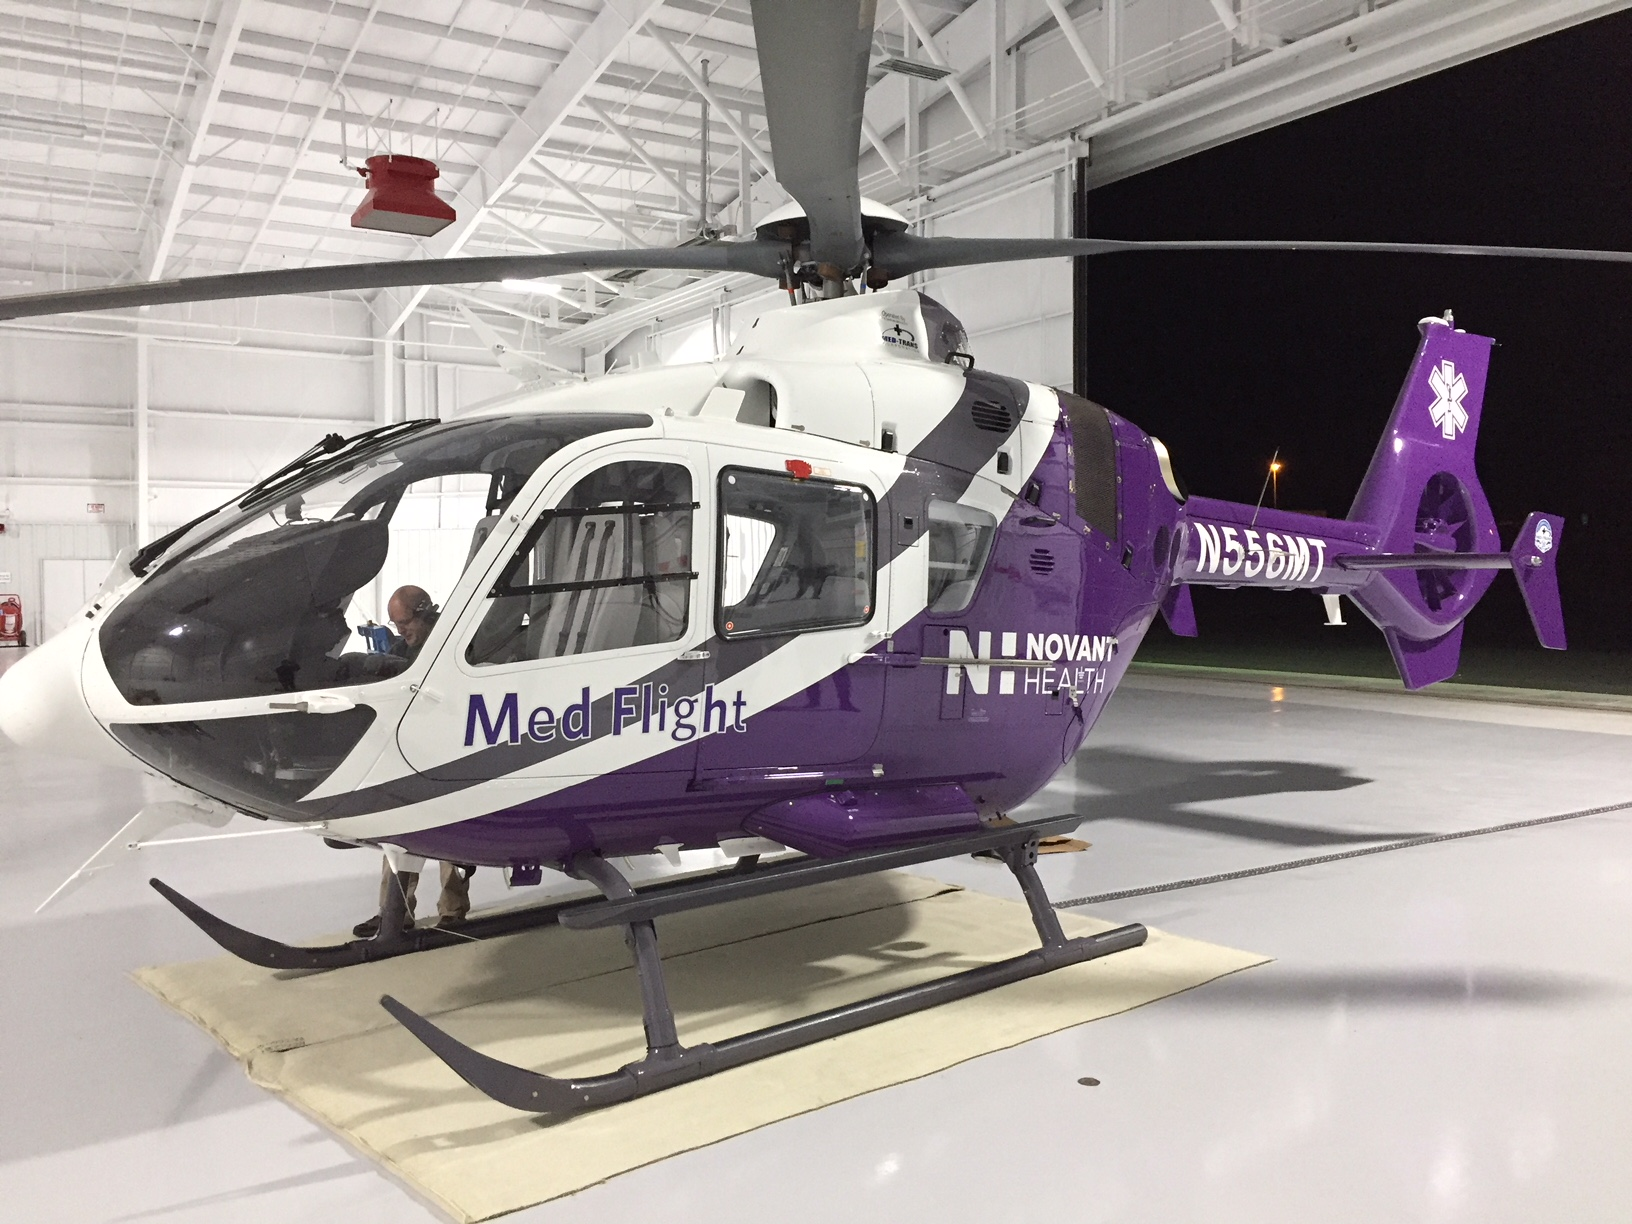 Novant Health Med Flight Helicopter